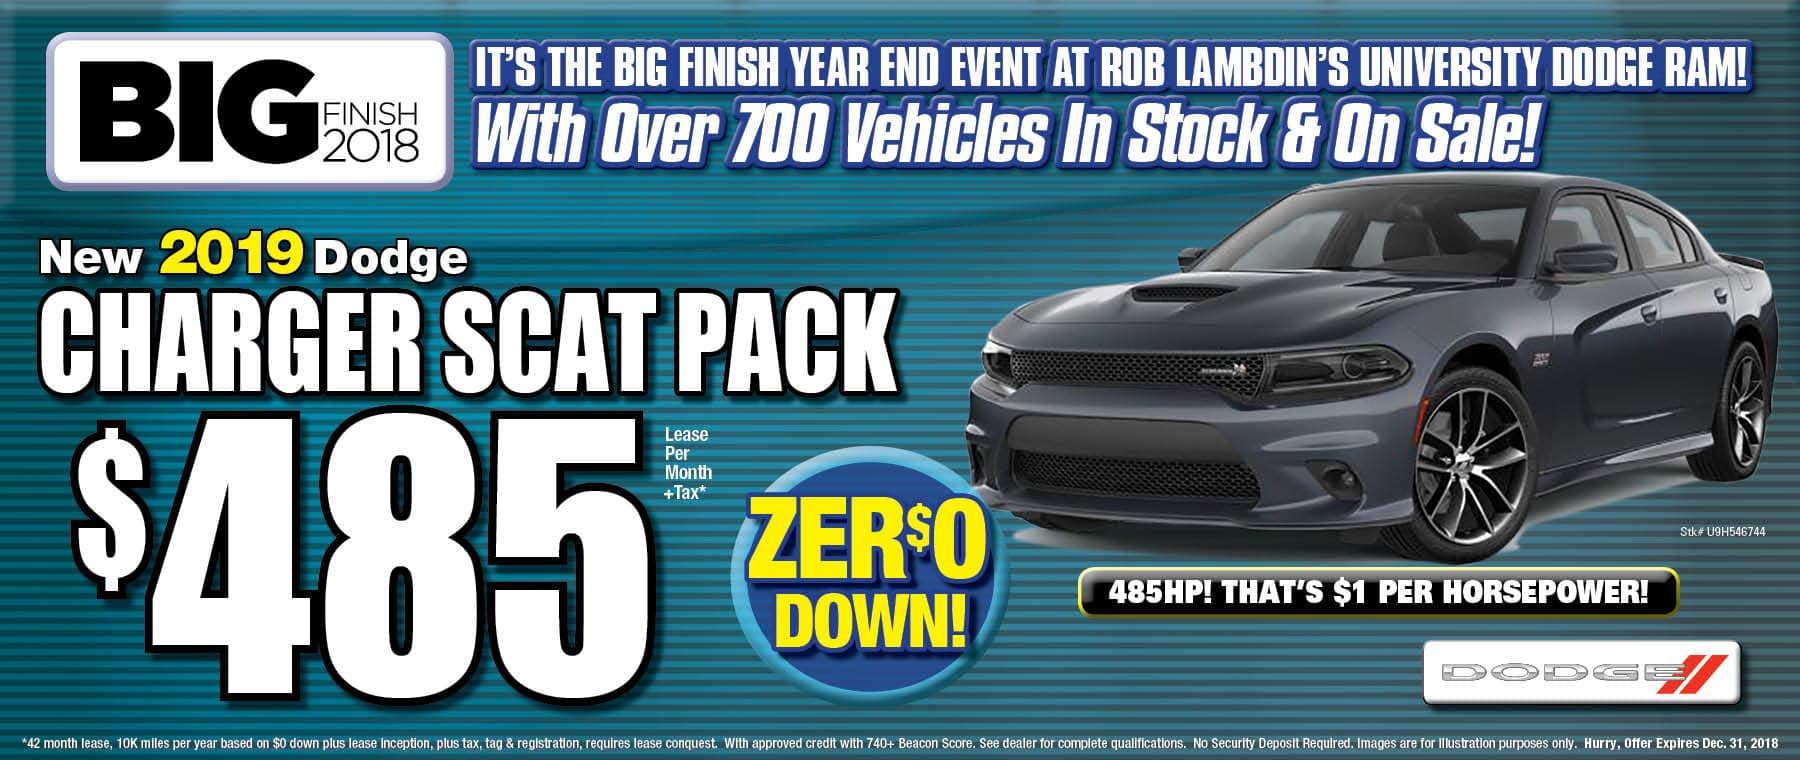 New Dodge Charger Scat Pack